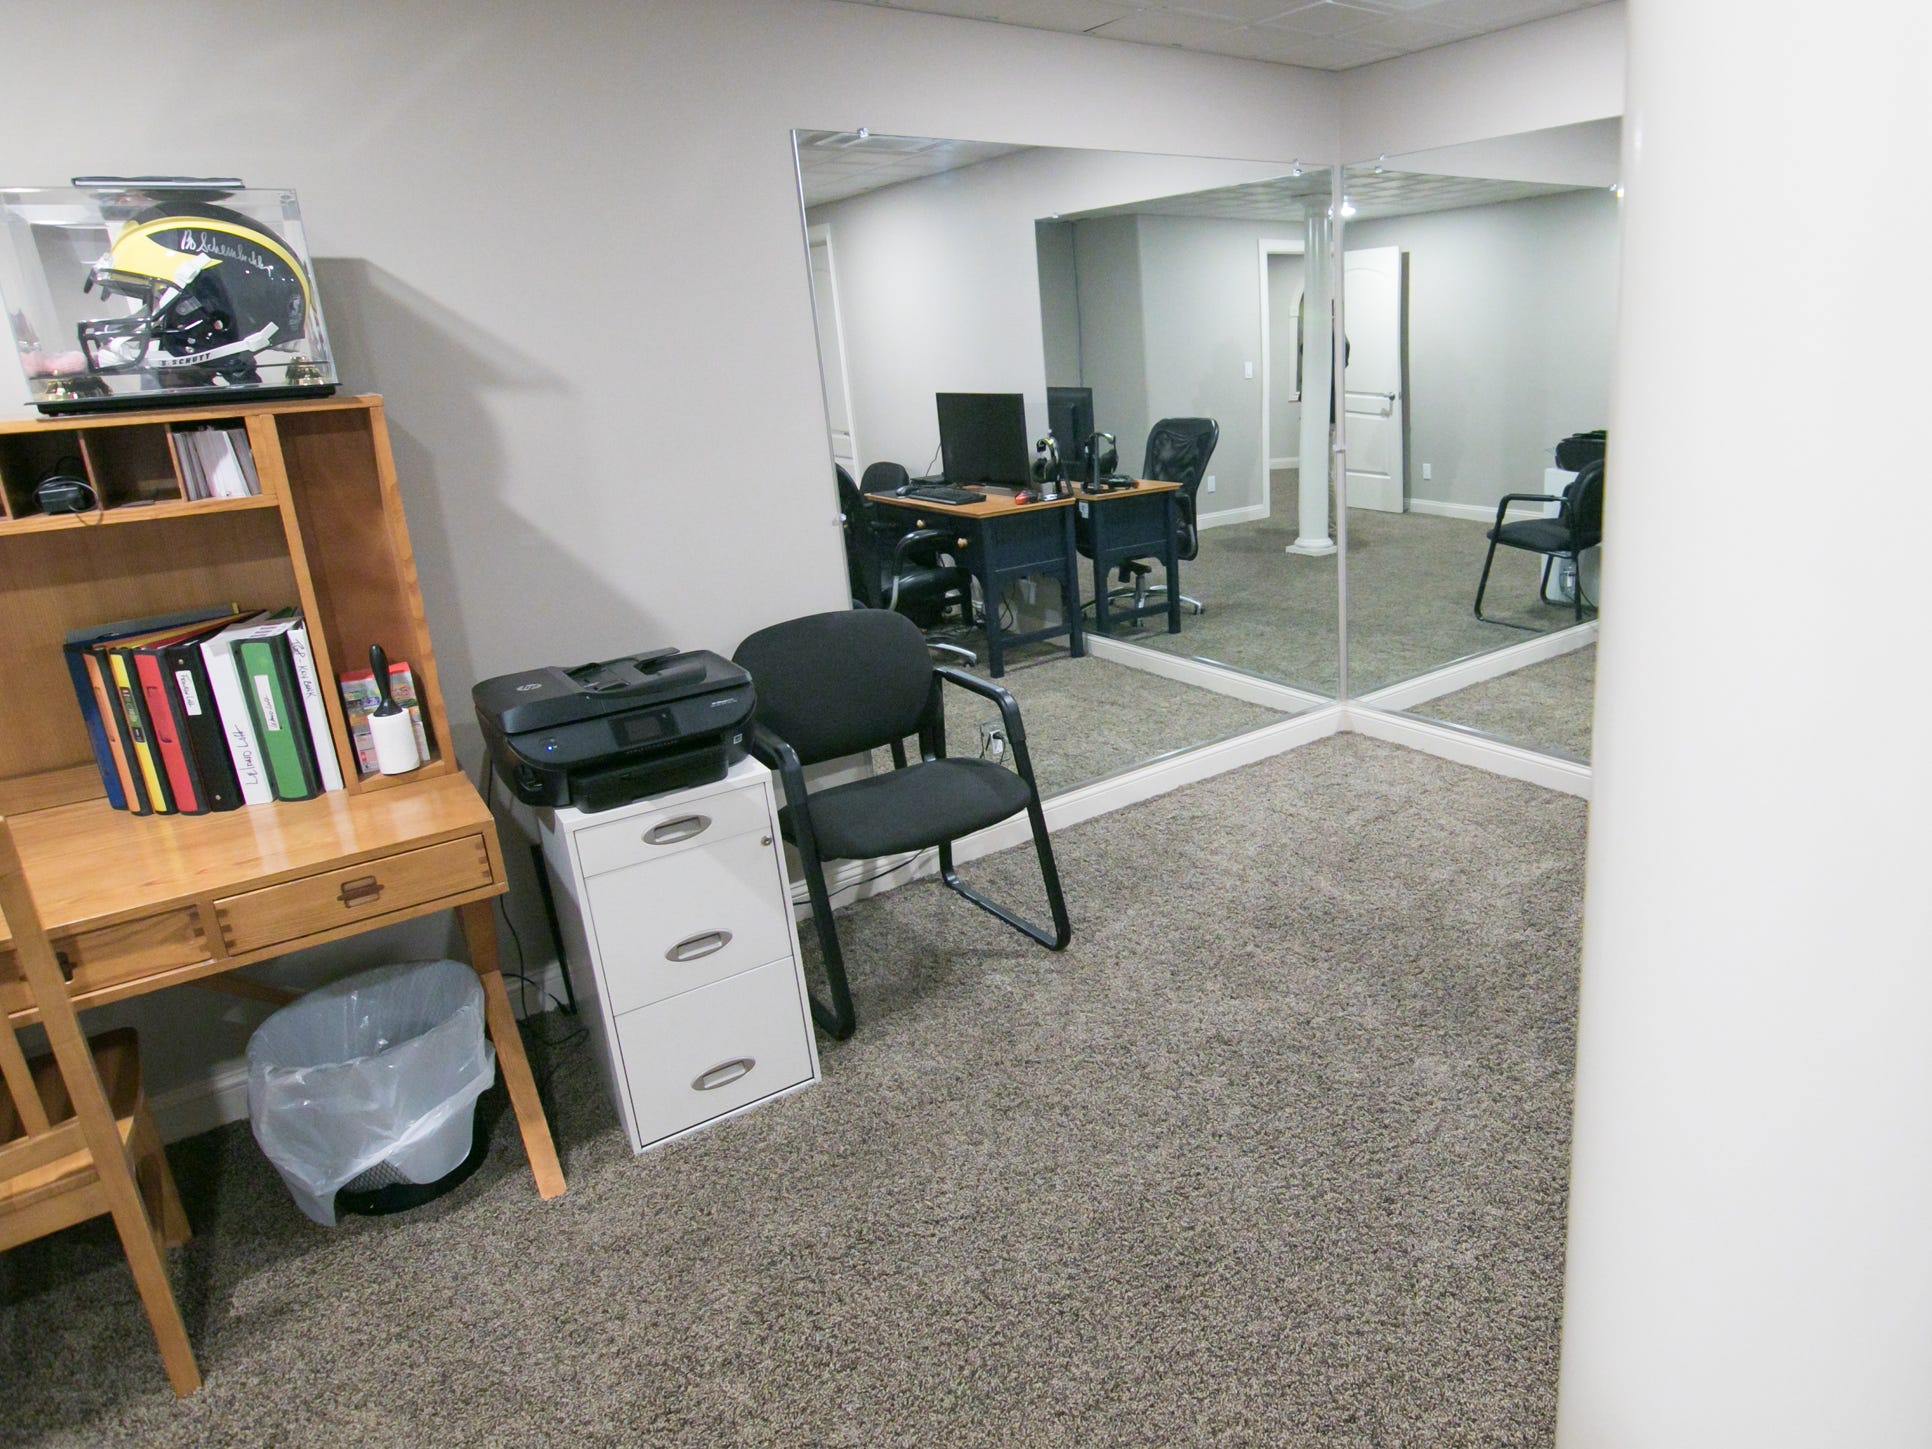 A room initially set up as Michelle Harris's workout room, shown Friday, Jan. 4, 2019, has now become a study space.